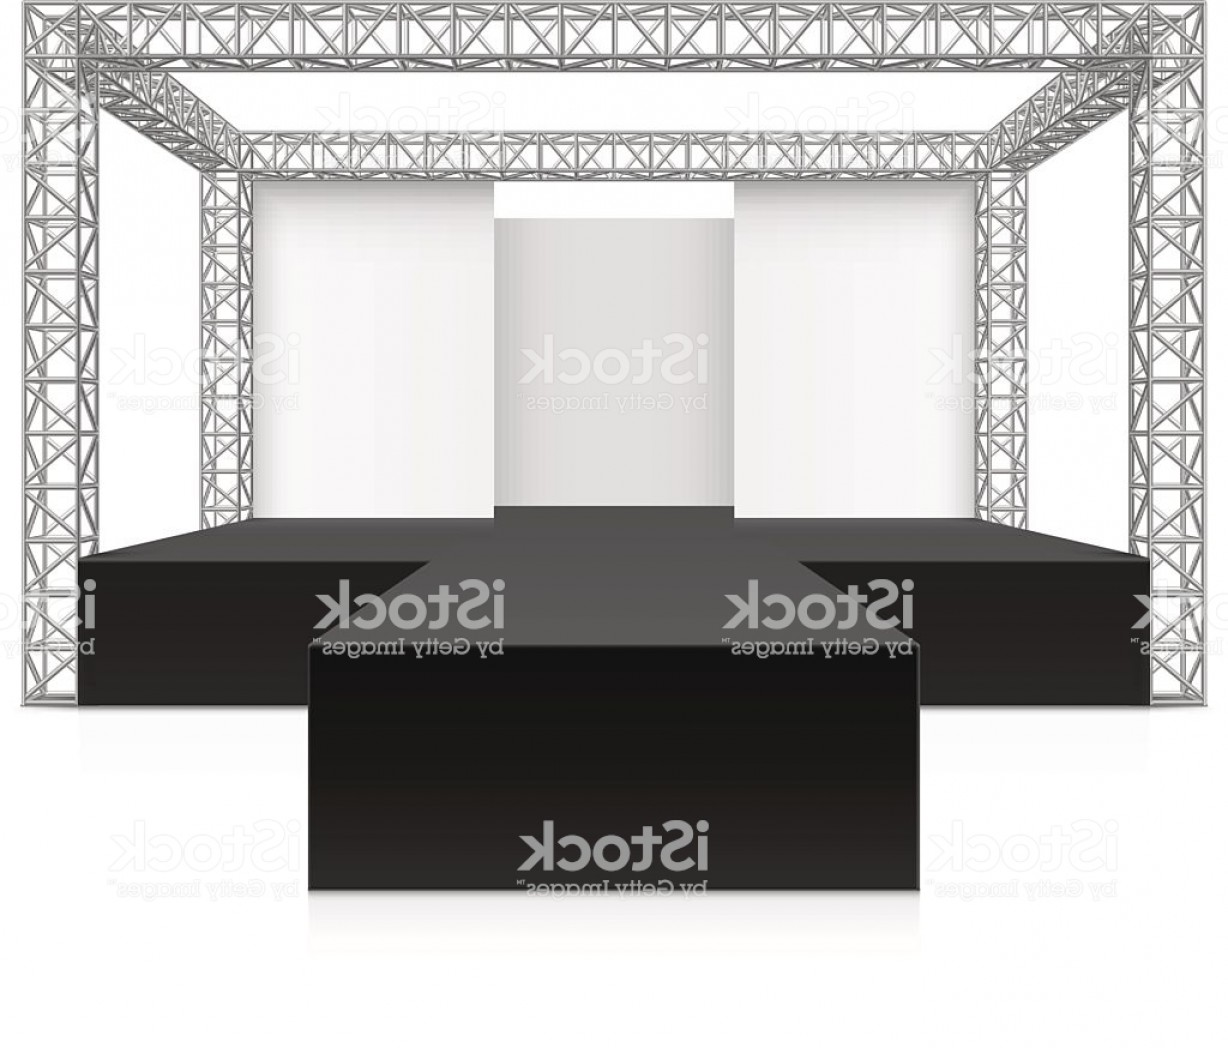 Aluminum Truss Design Vector: Outdoor Festival Stage Podium Metal Truss System Gm